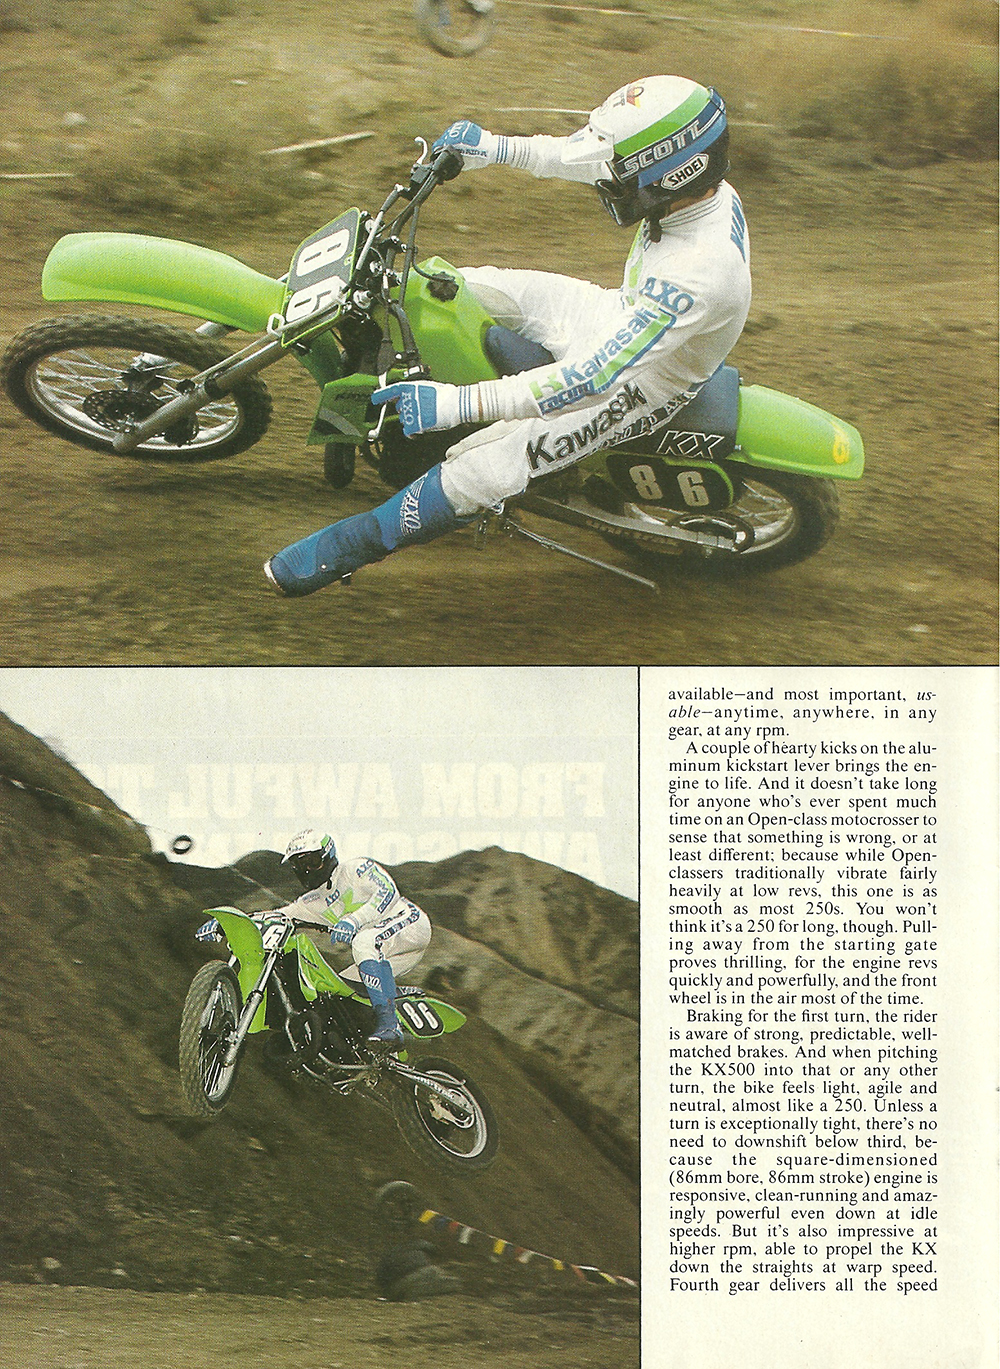 1985 Kawasaki KX500 road test 03.jpg